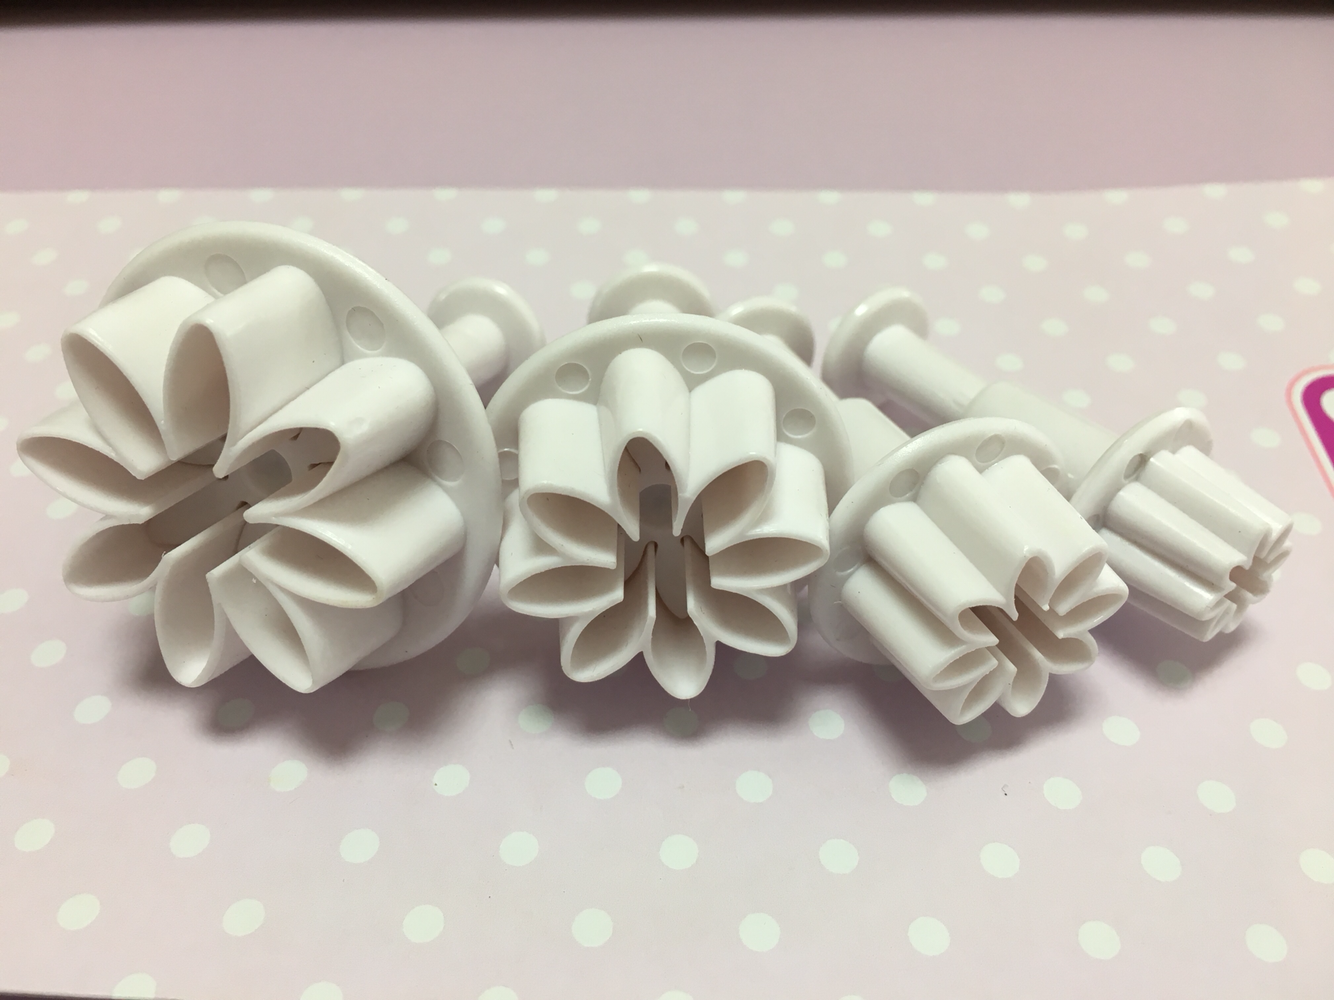 Cake Star Plunger Cutters -Daisy -Set of 4 -Kουπάντ Mαργαρίτες με Eκβολέα -4 τεμ.